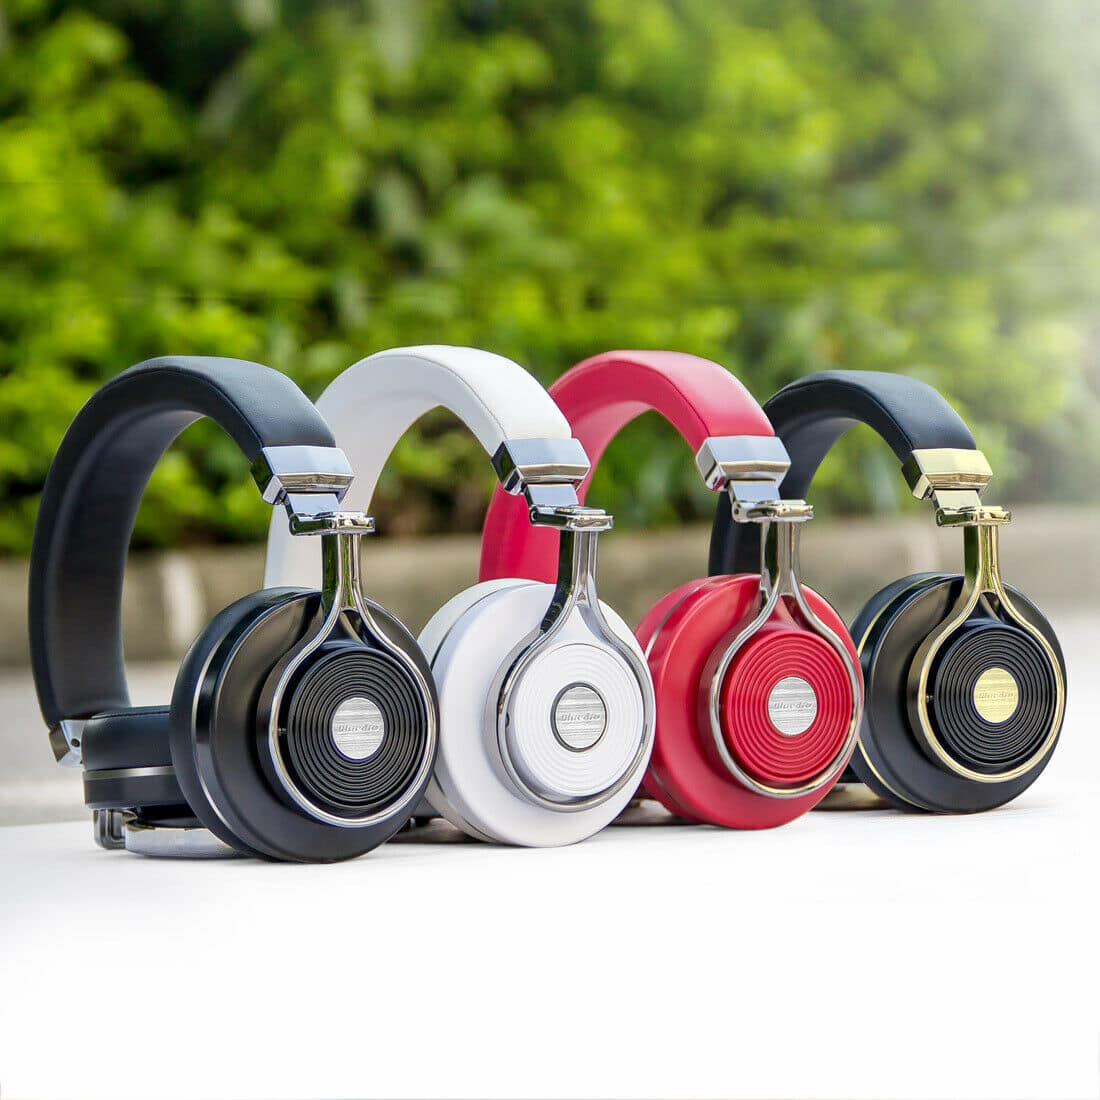 Bluedio T3 Bluetooth 4.1 Stereo Headphones $19 or $16 when you buy 2 or more + Free Shipping